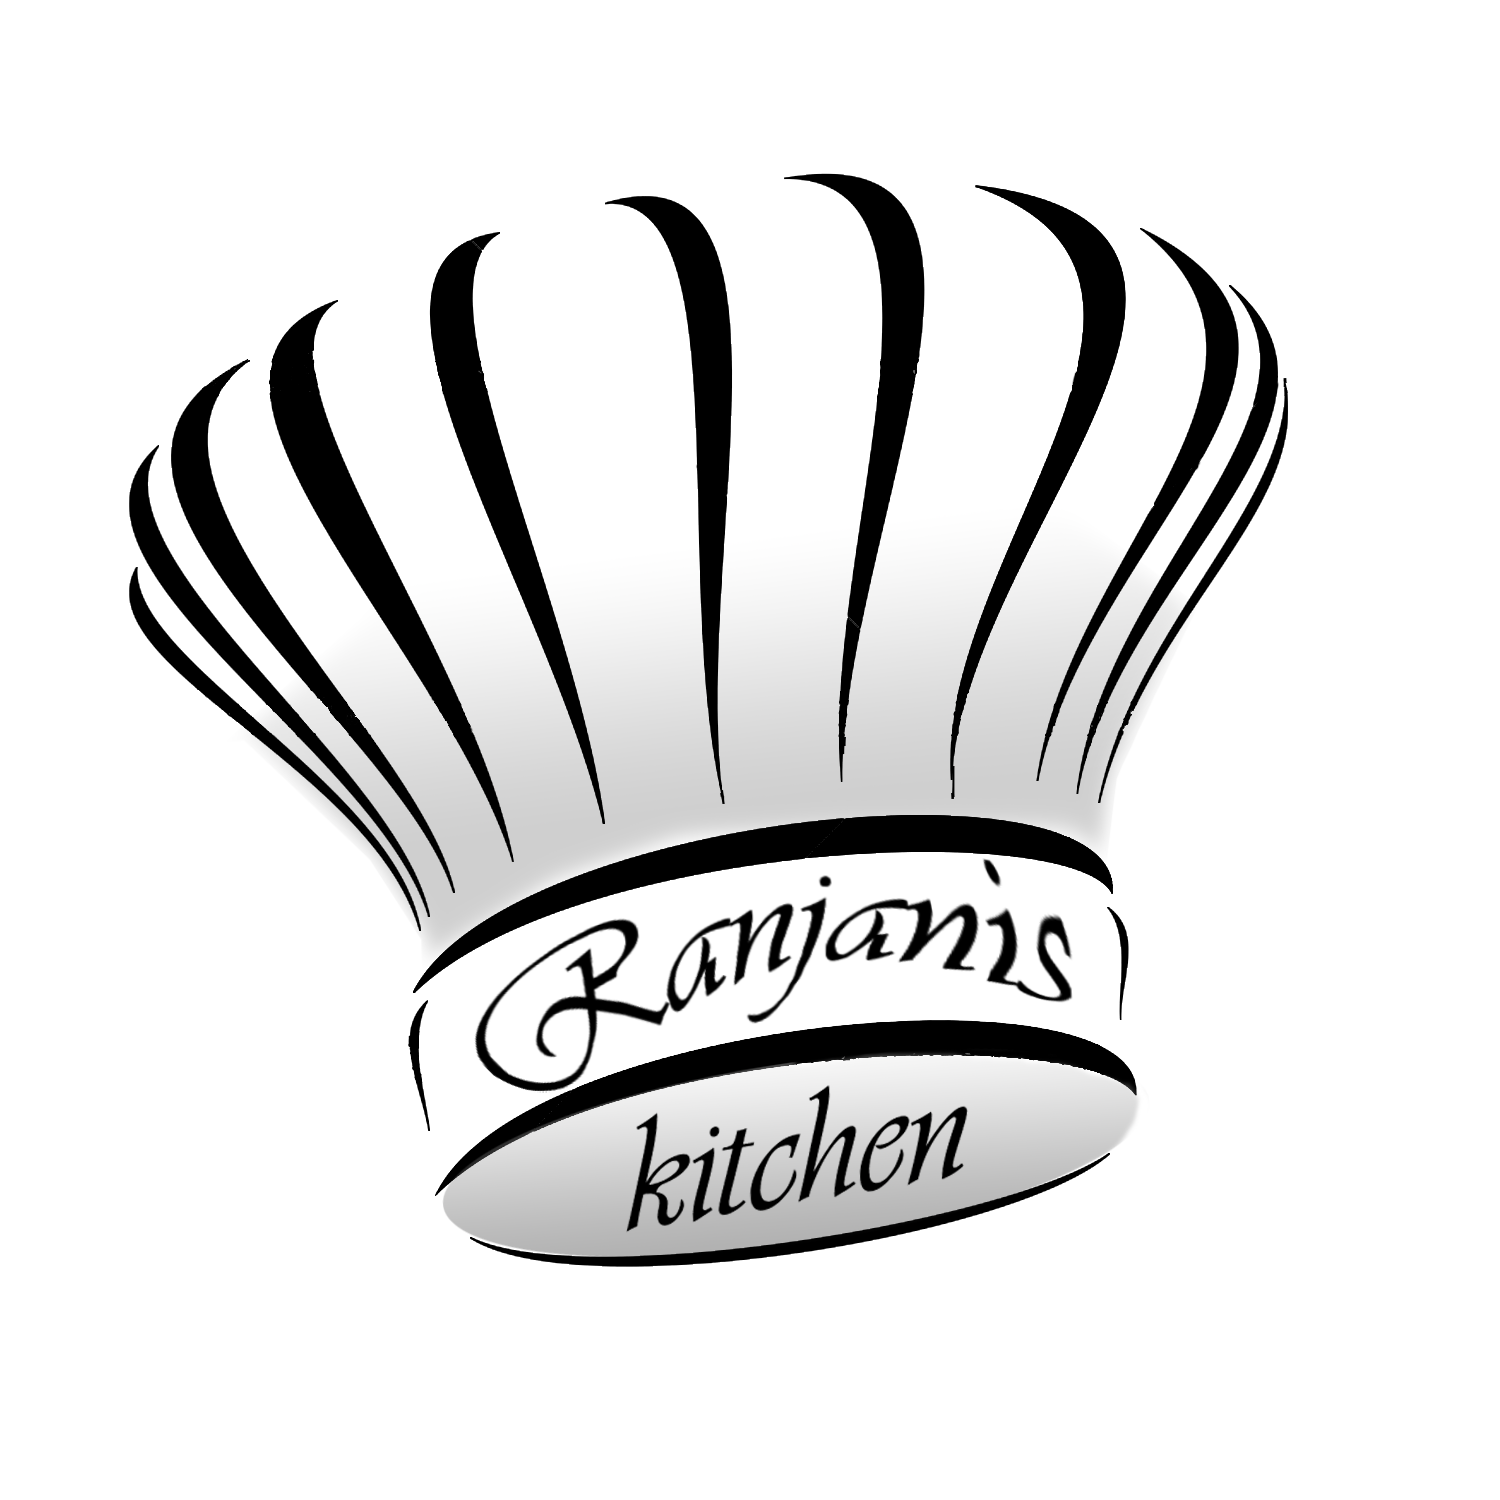 Ranjani\'s Kitchen | Page 2 of 23 | Exploring the taste buds.......